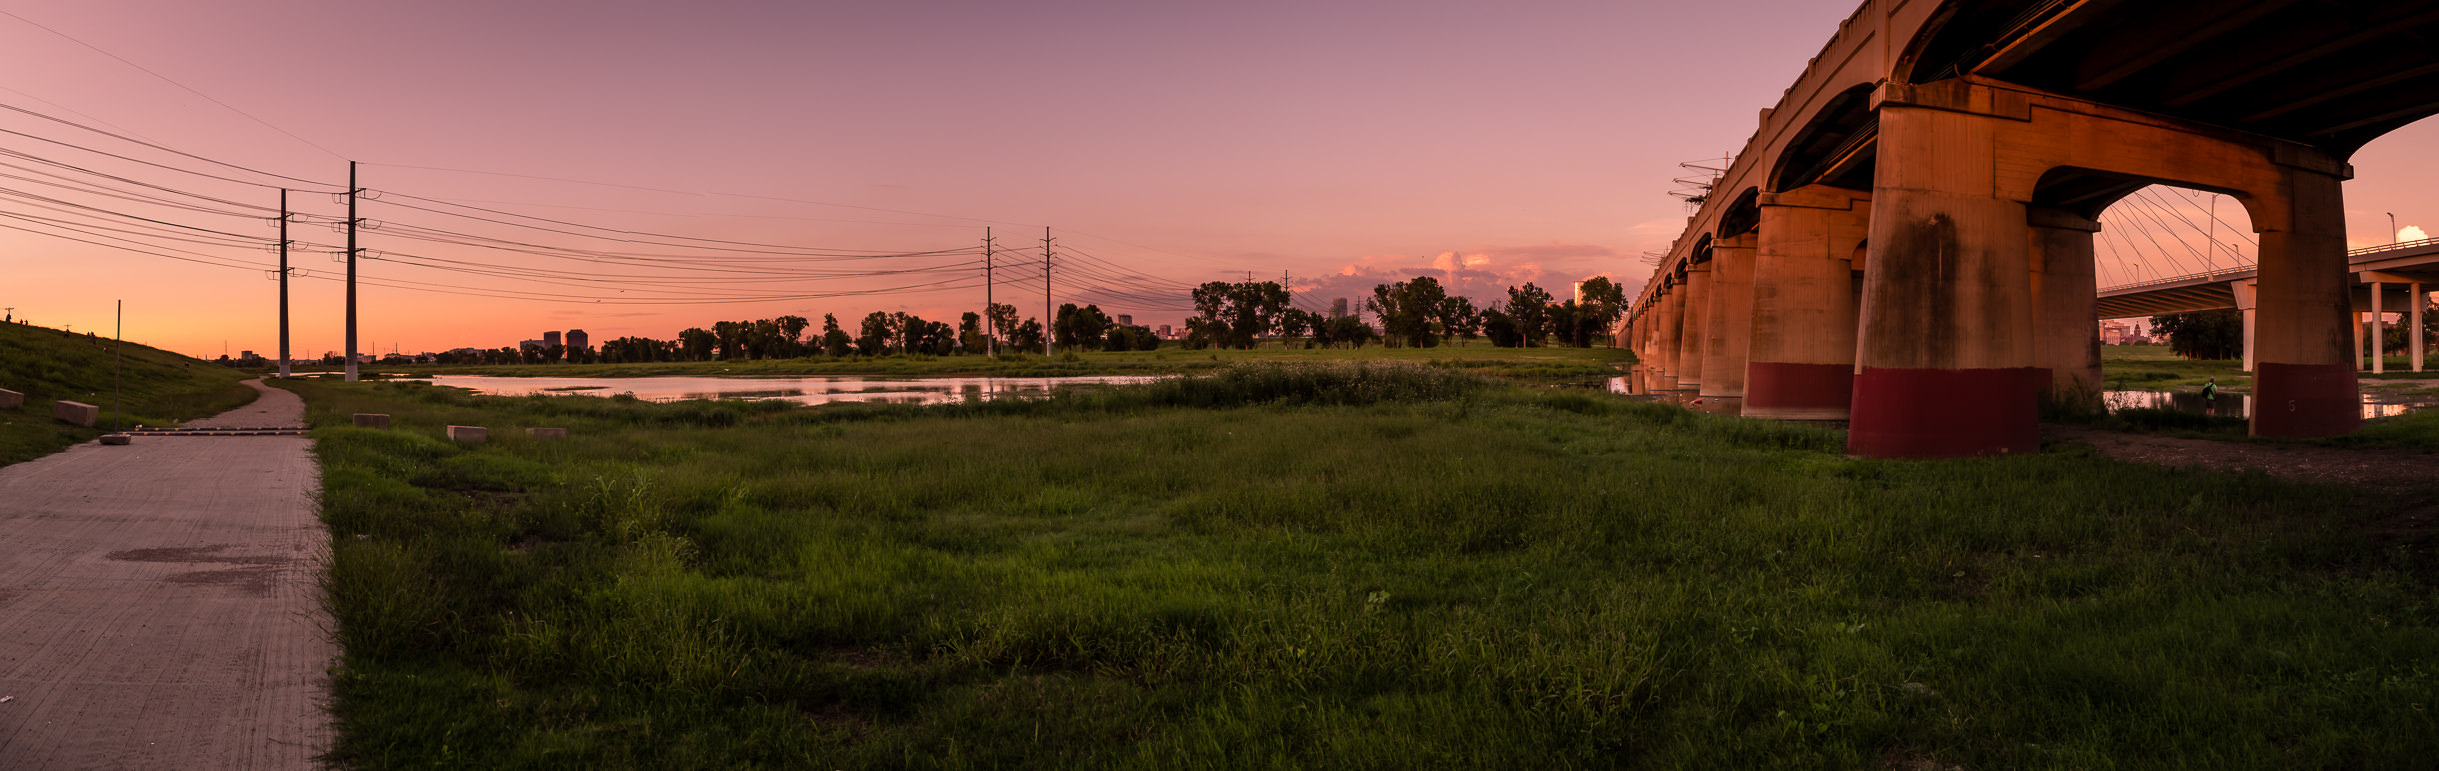 The sun sets on the Trinity River floodplain at the Commerce Street Viaduct in Dallas.